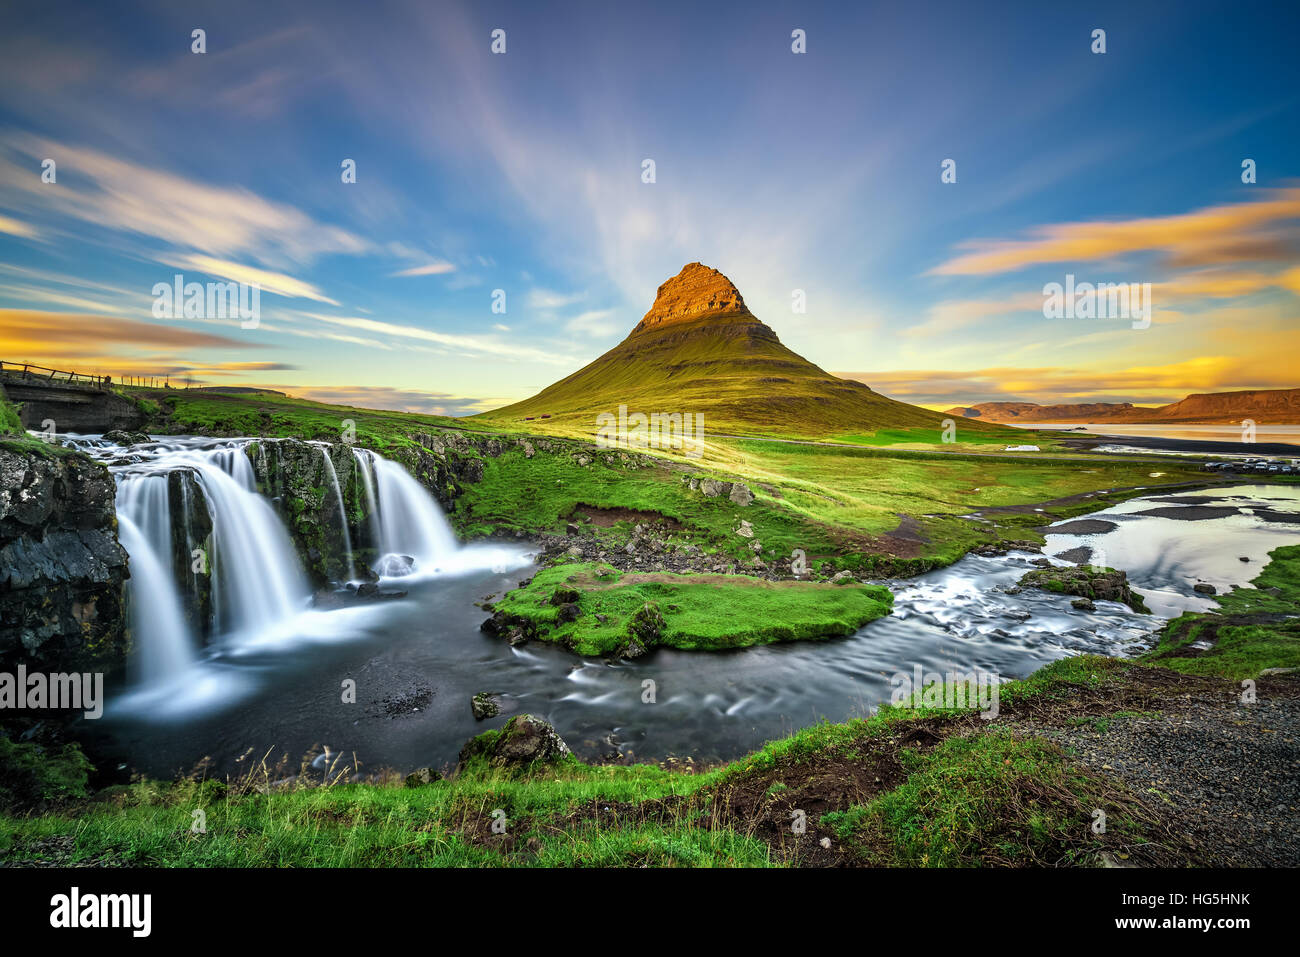 Estate tramonto sulla famosa cascata Kirkjufellsfoss con Kirkjufell mountain in background in Islanda. Immagini Stock